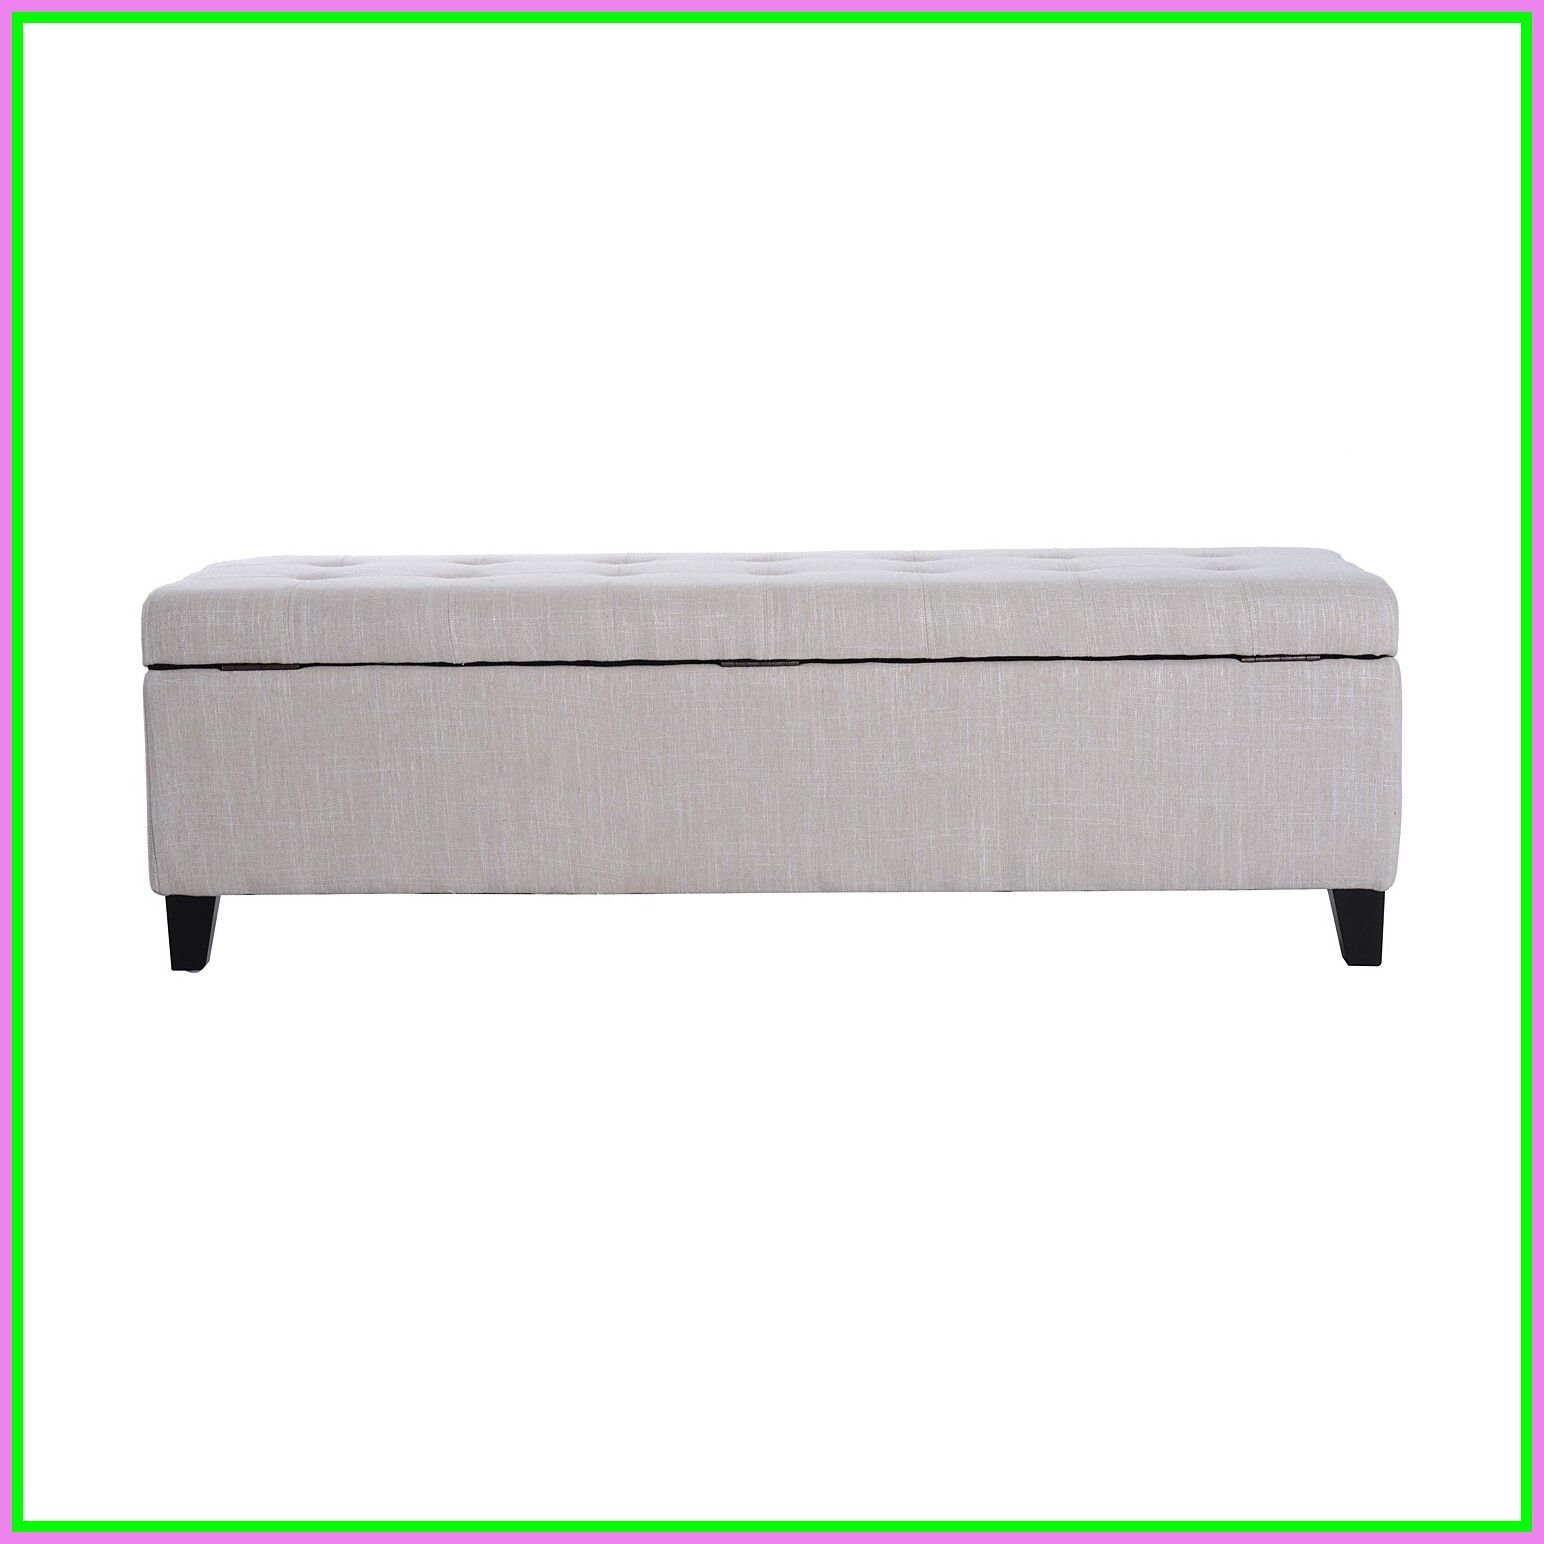 92 reference of fabric bench ottoman in 2020 Fabric